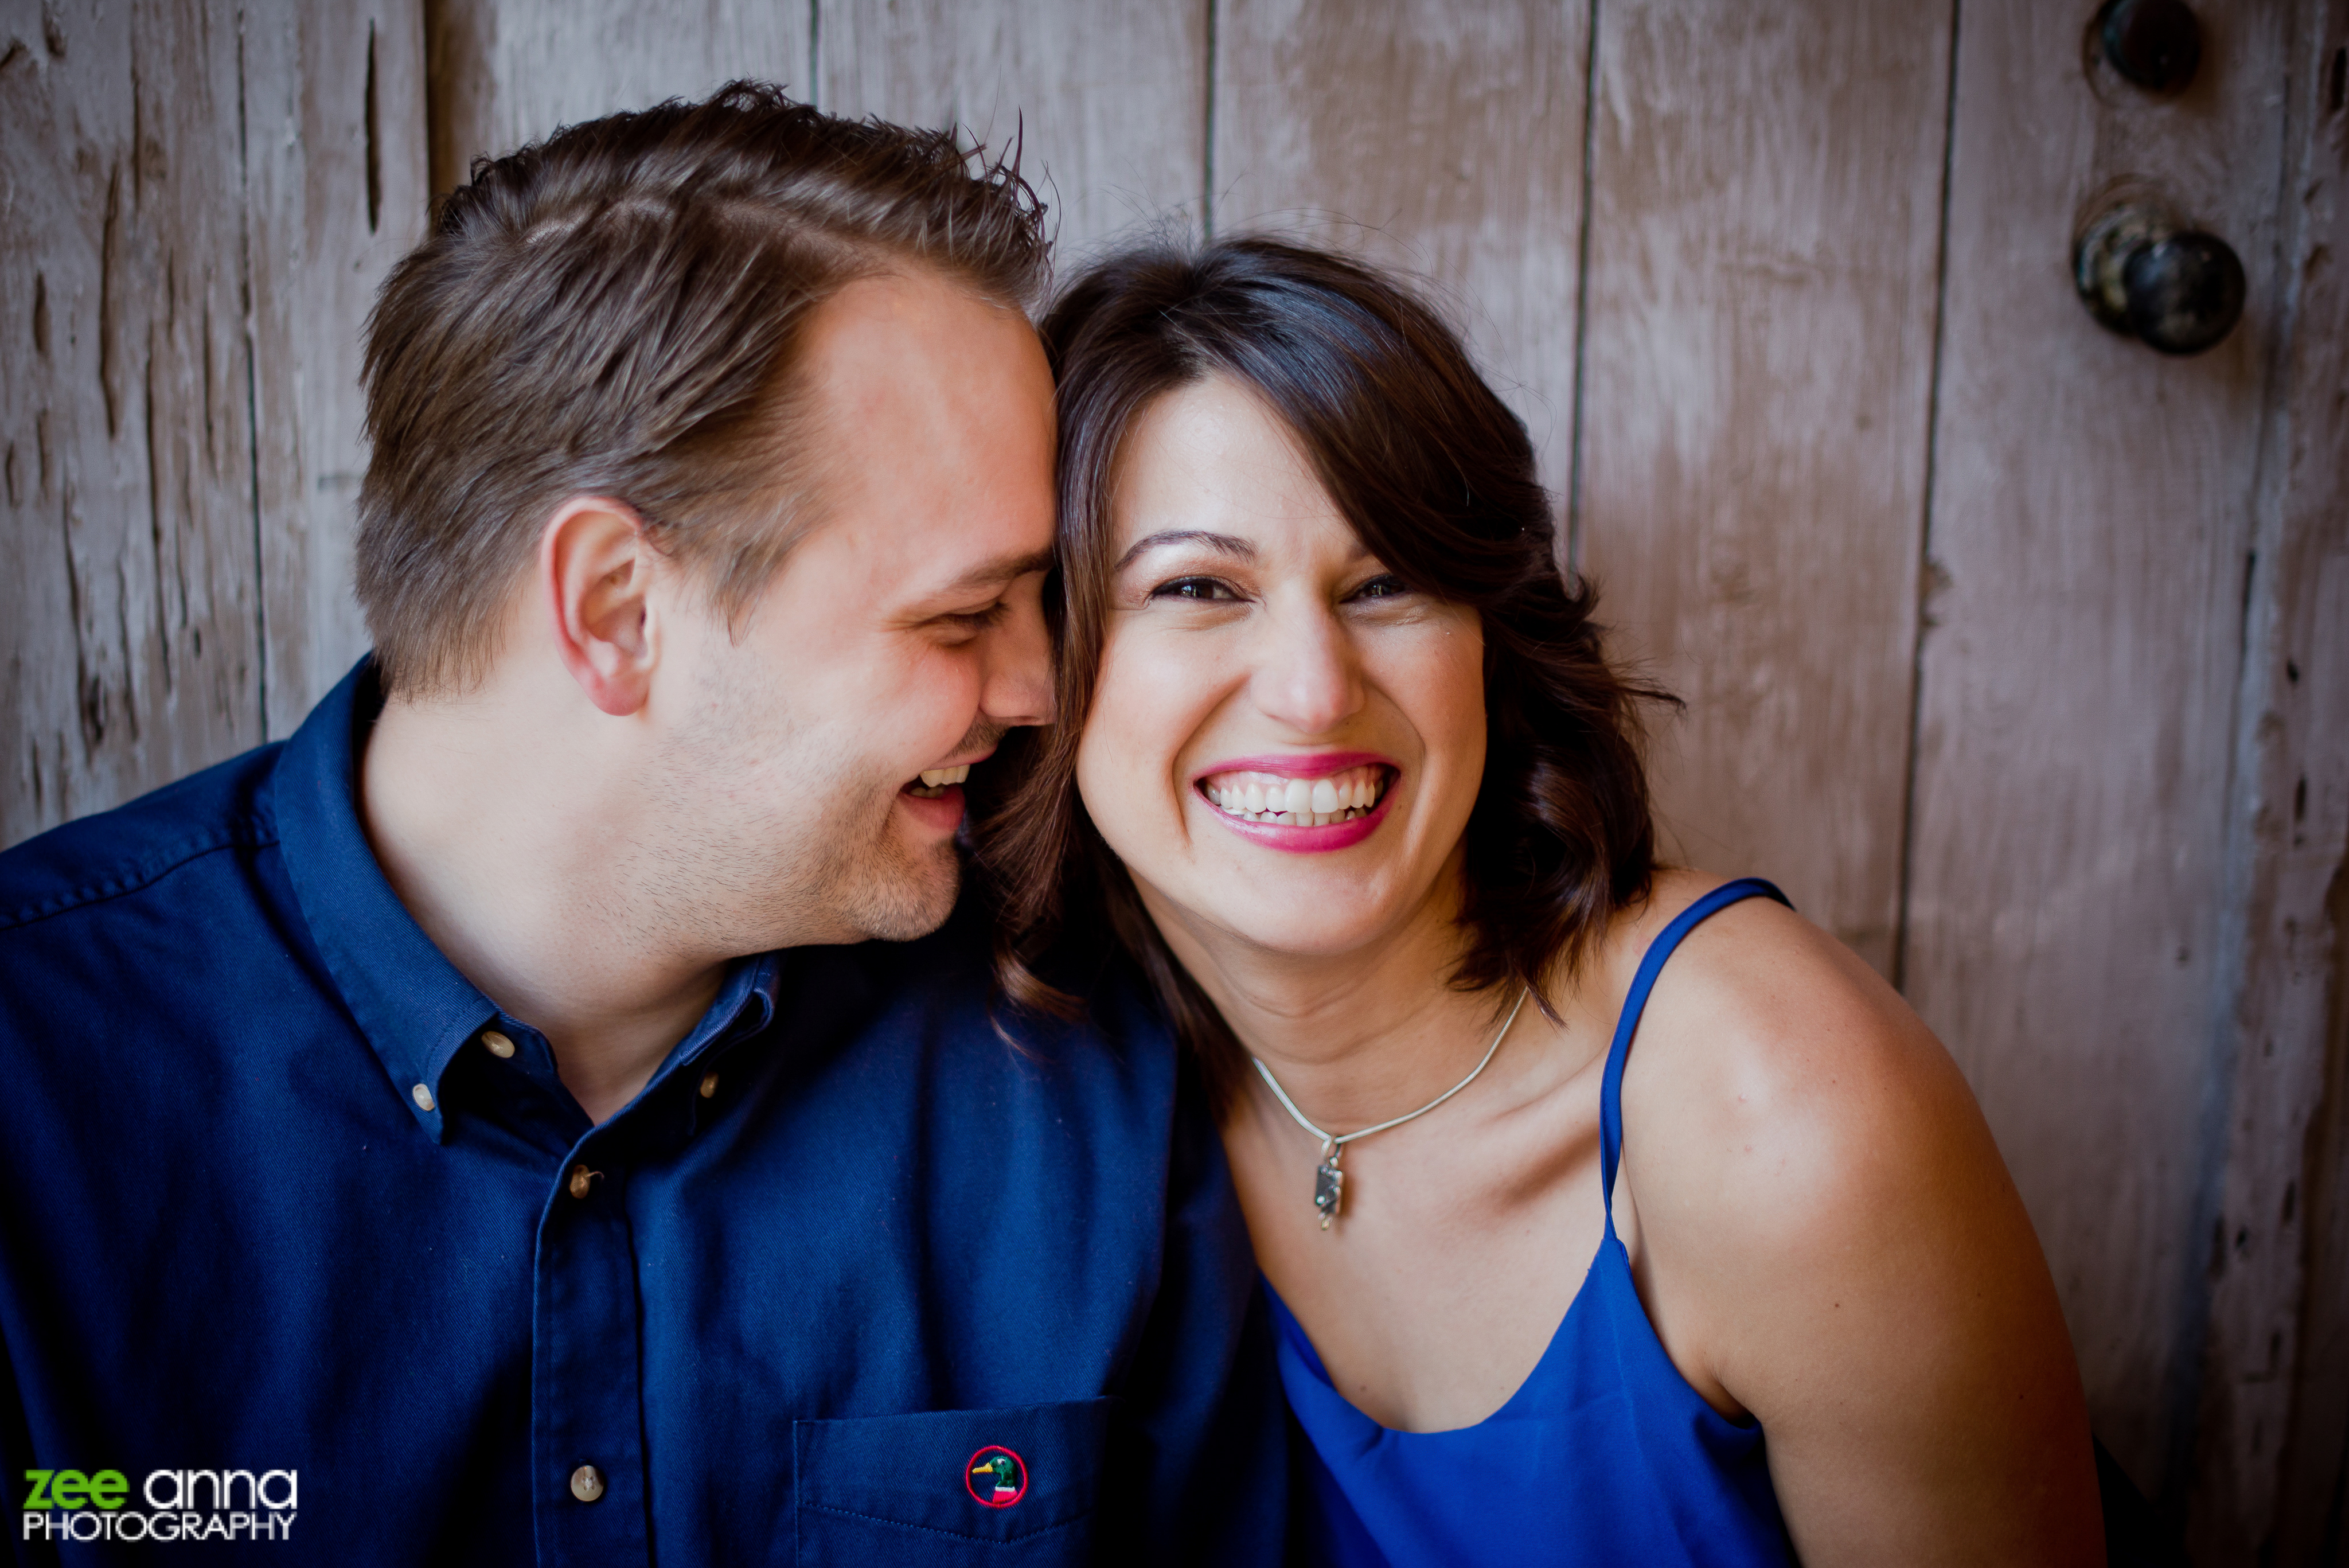 Jason+Tabitha-Engagement_01122014_093-93